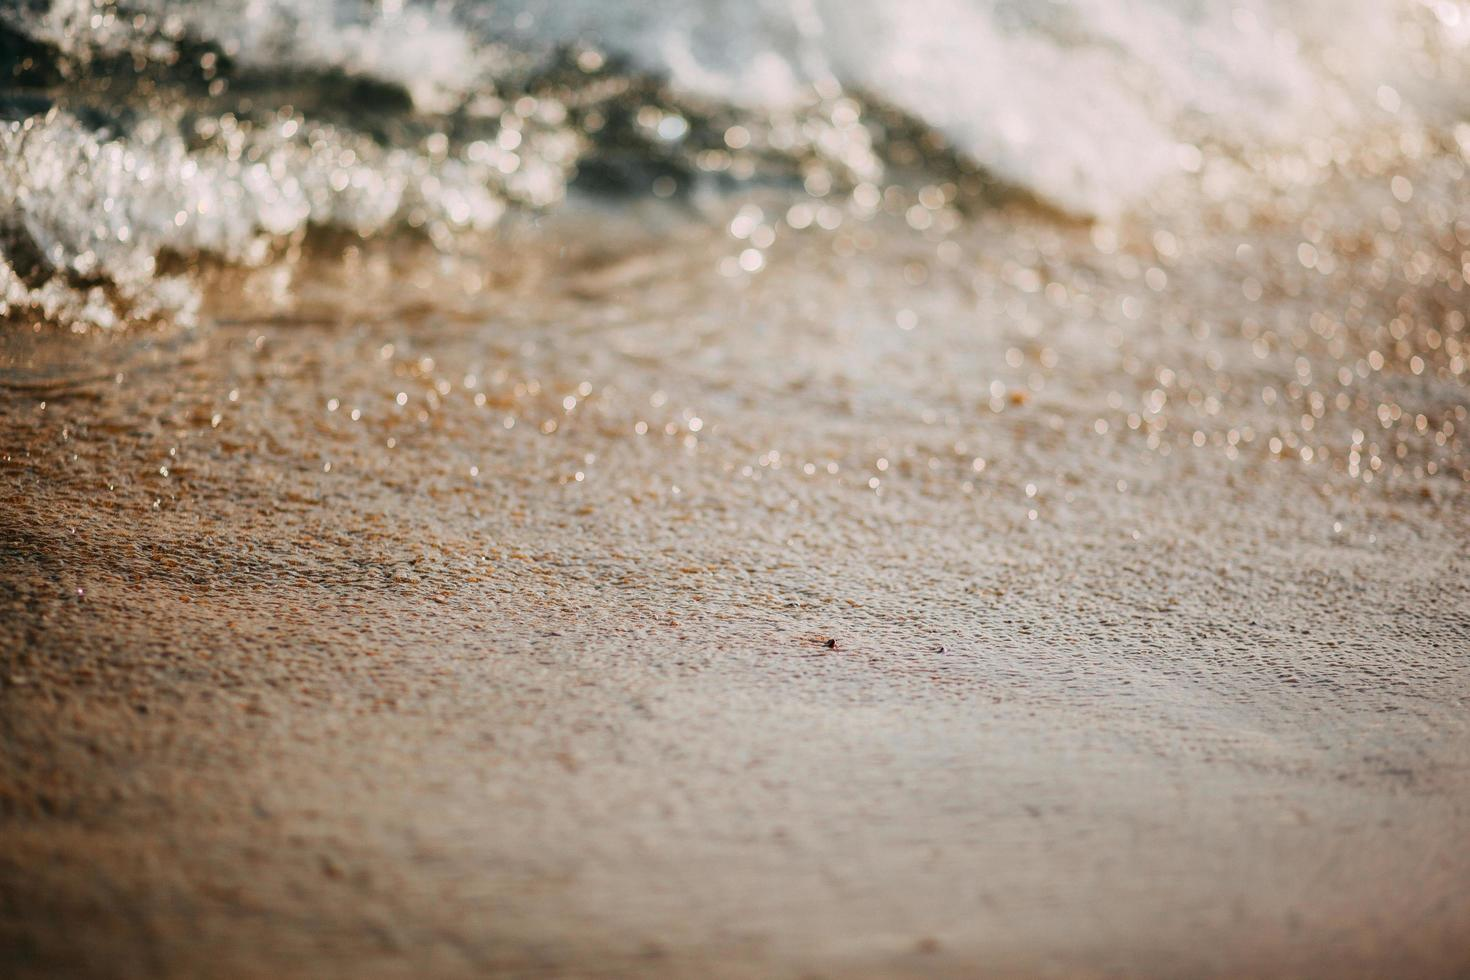 Close-up of sand on a beach photo